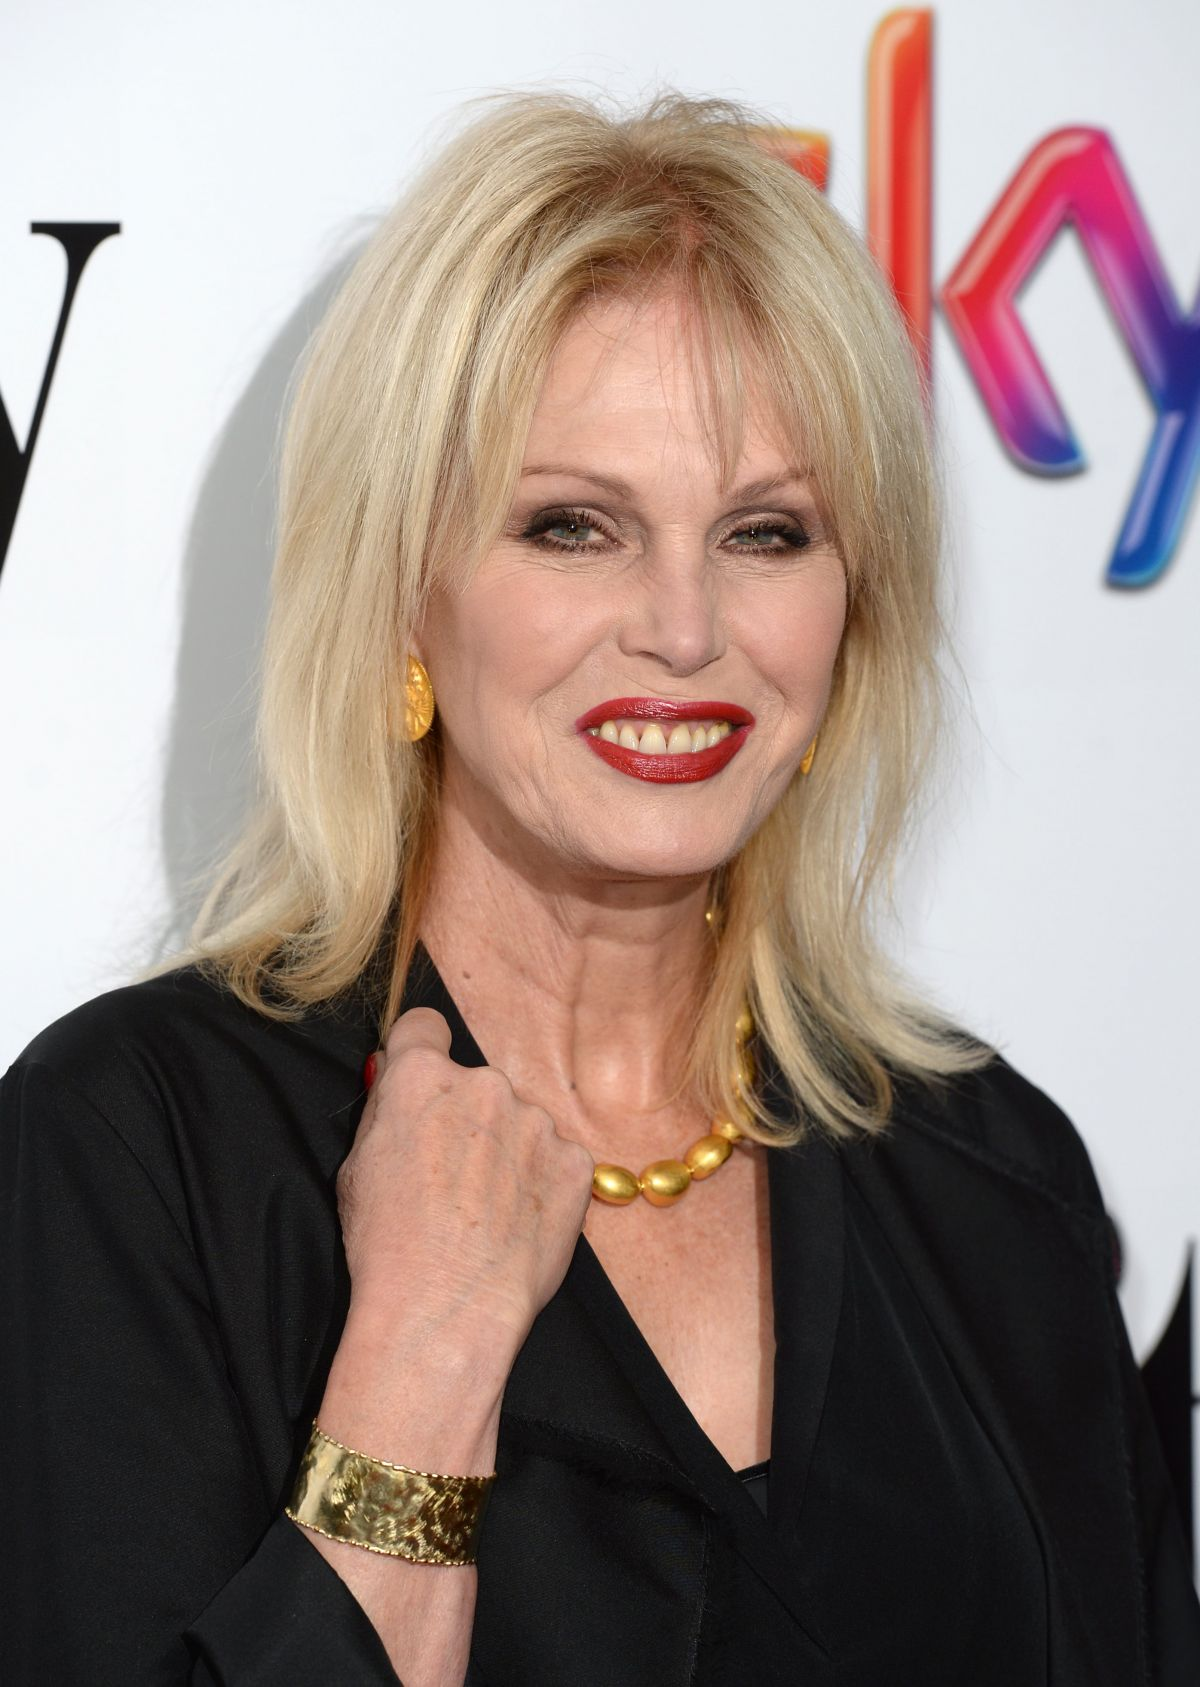 JOANNA LUMLEY at 2015 Sky Women in Film and TV Awards in London 12/04/2015